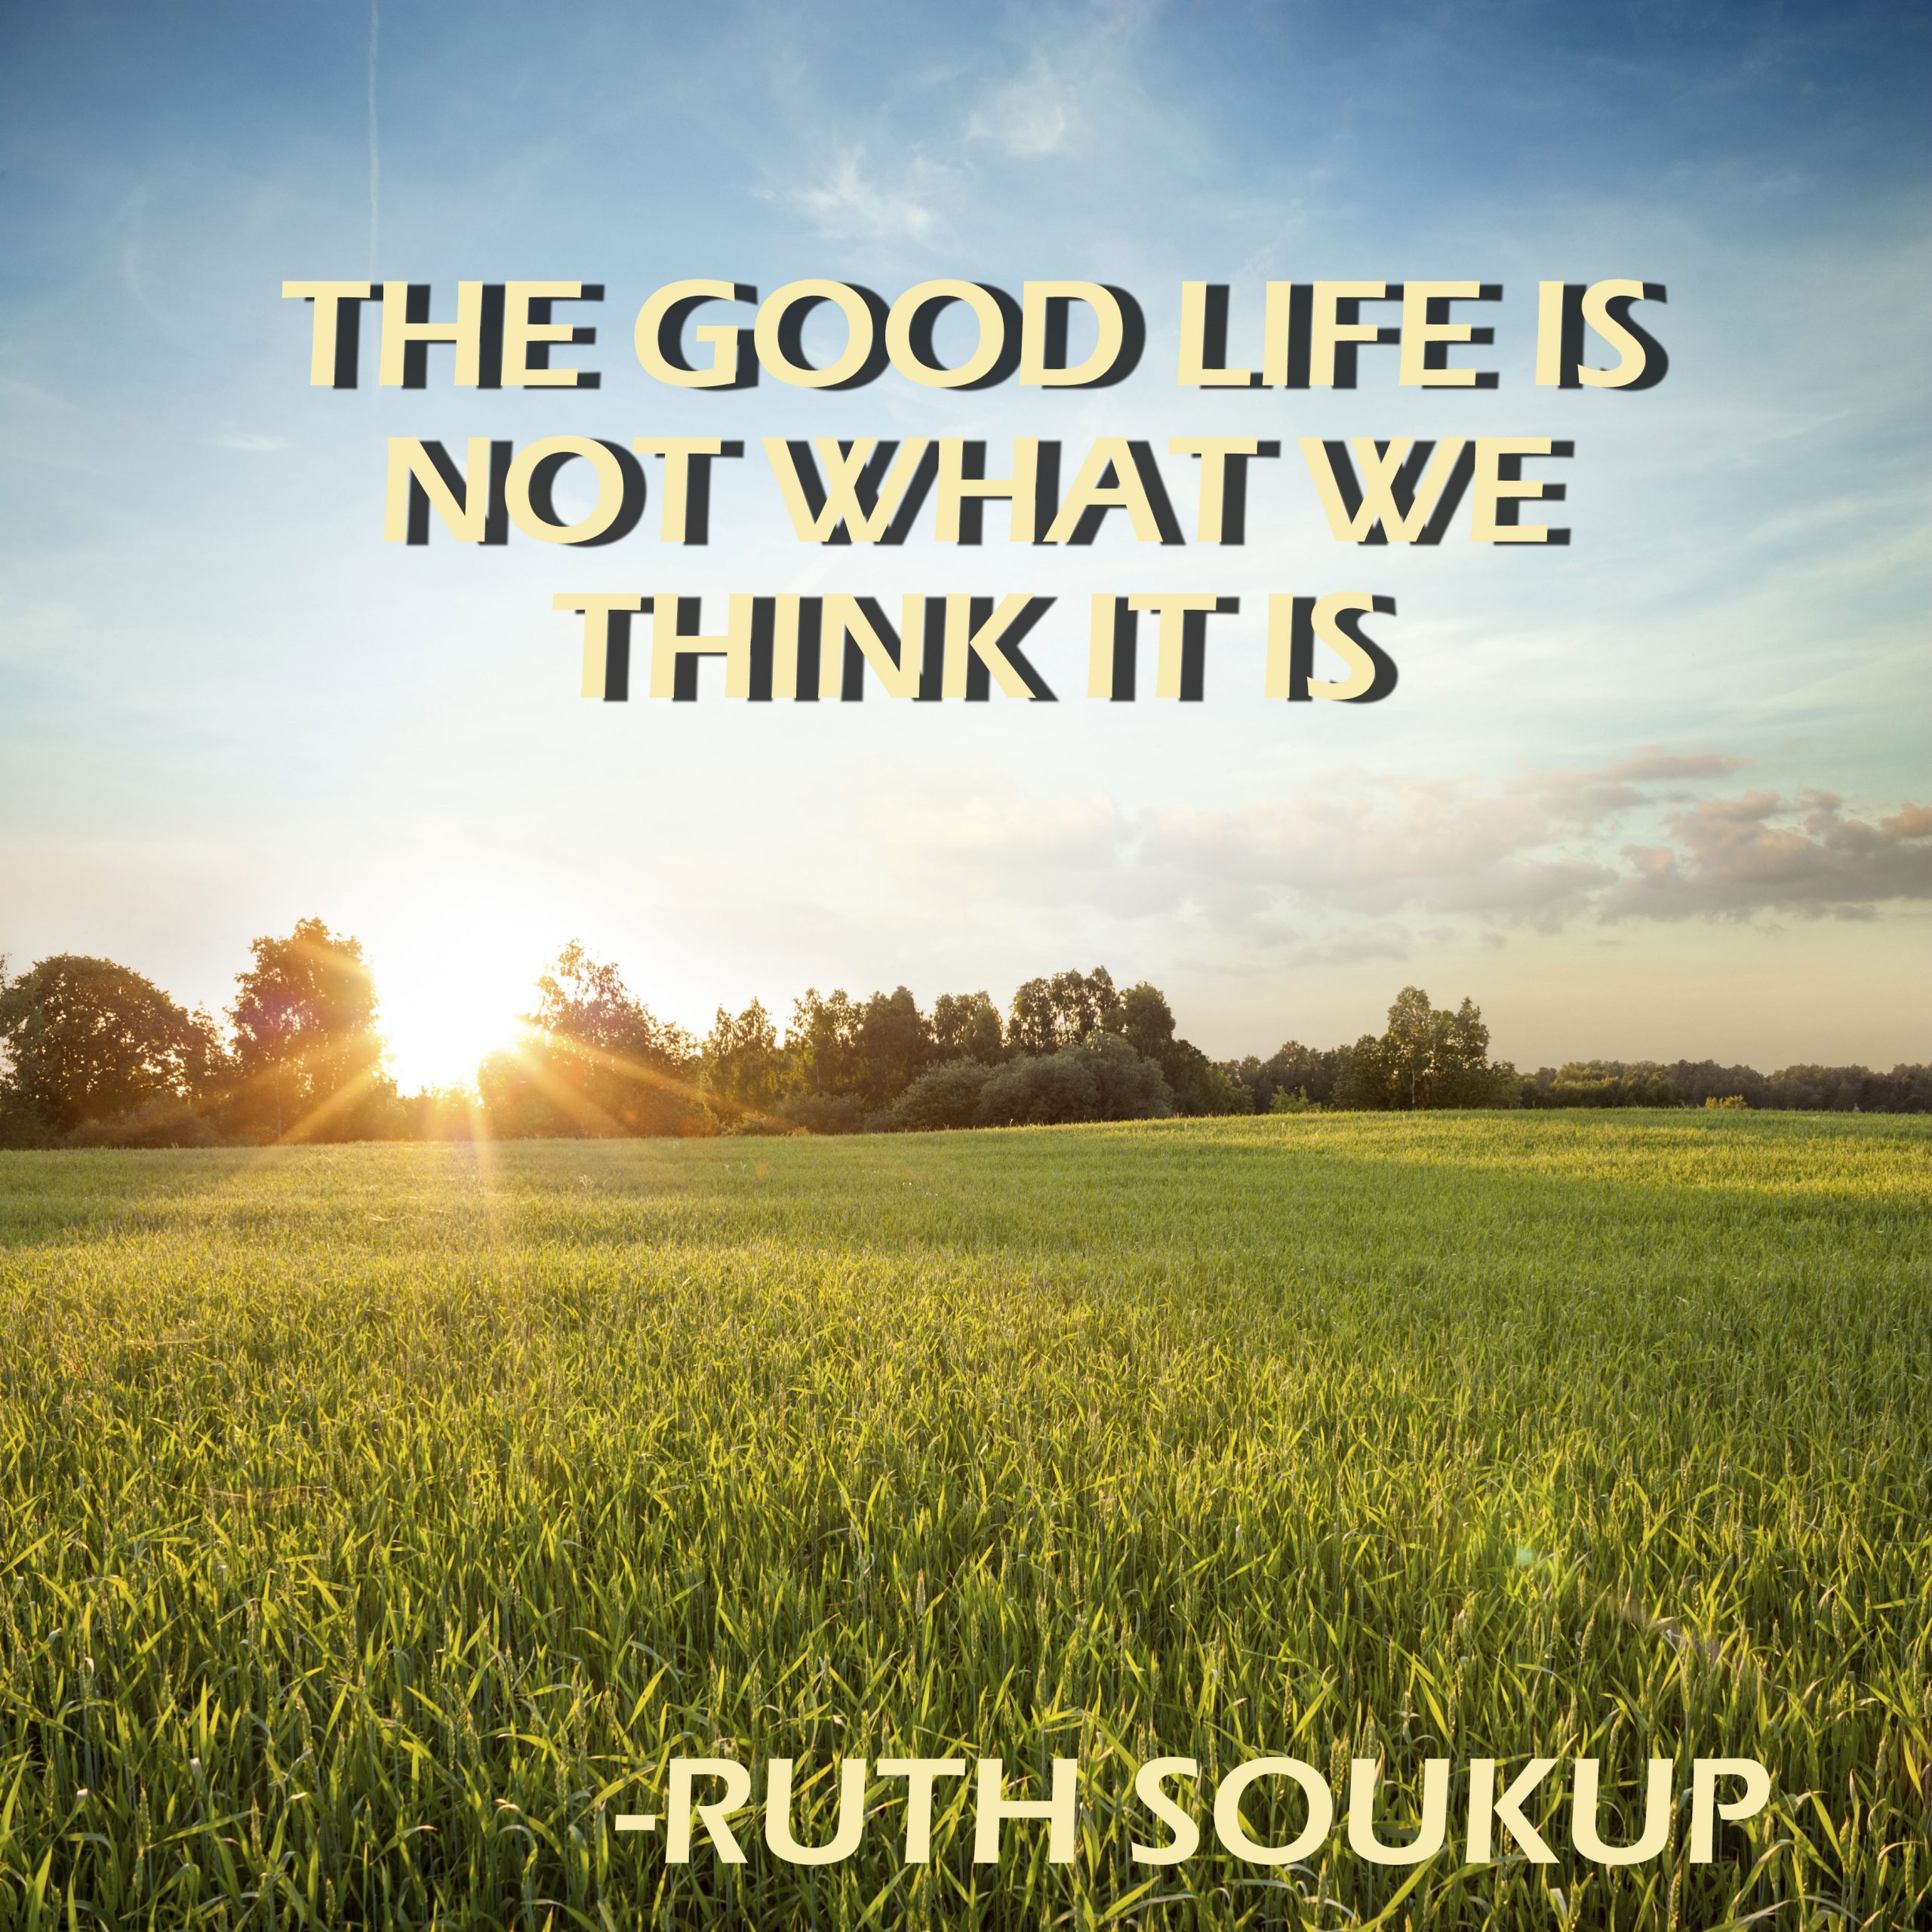 The Good Life is Not What We Think It Is